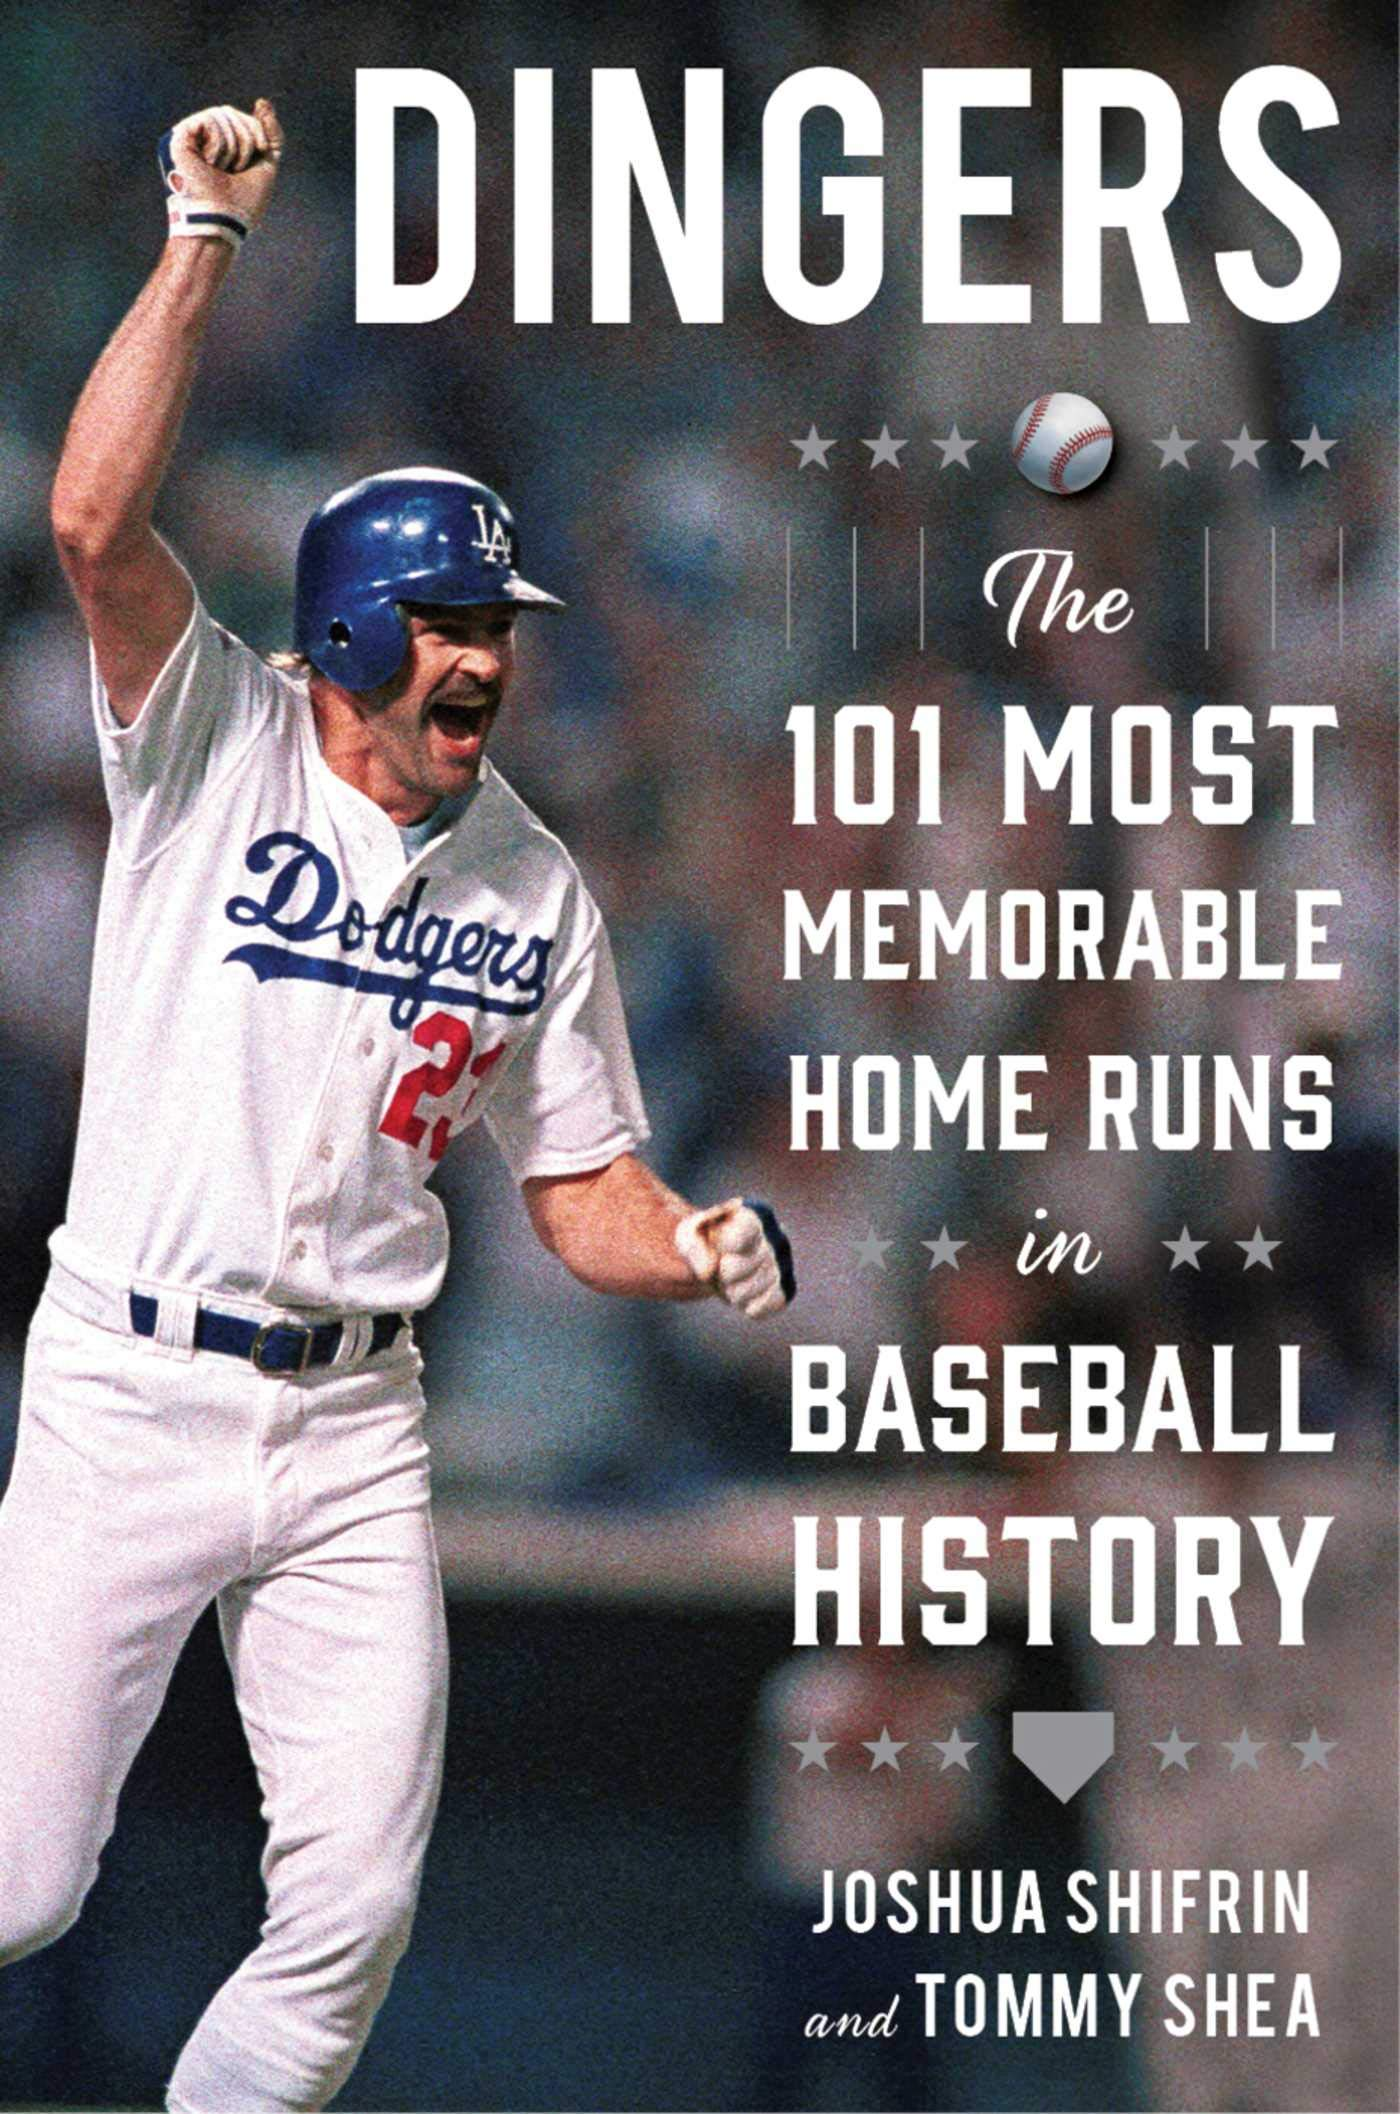 Image OfDingers: The 101 Most Memorable Home Runs In Baseball History